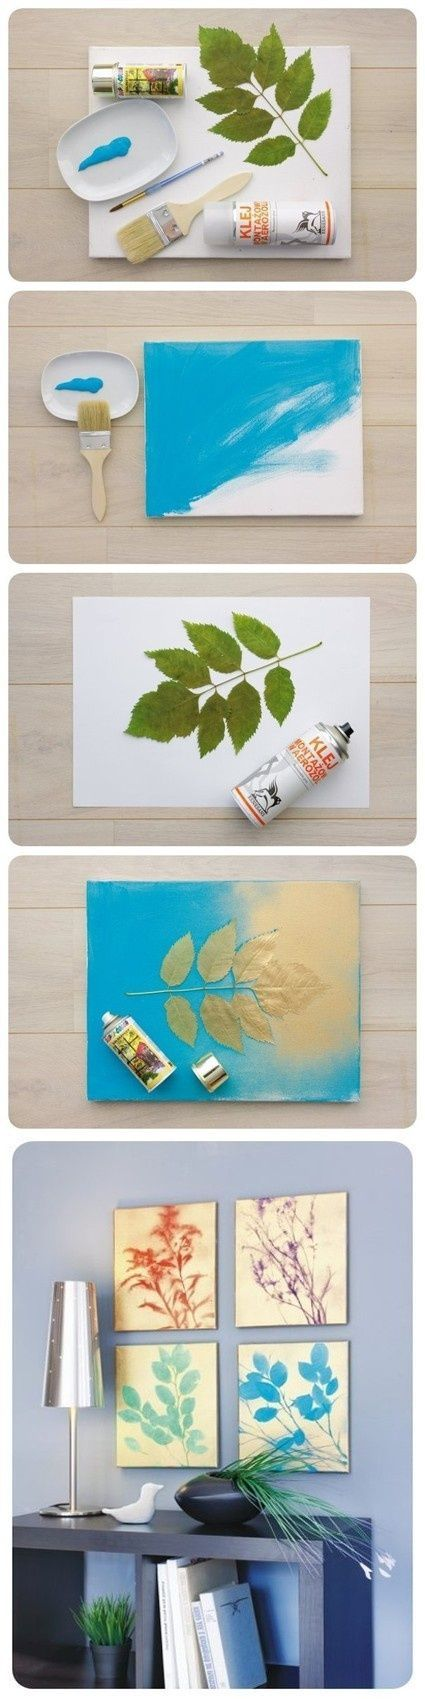 I kind of like this idea and it would be   easy to do while it's summer and everything has leaves and we could do it   outside. and I know where we can get some pretty cheap canvases